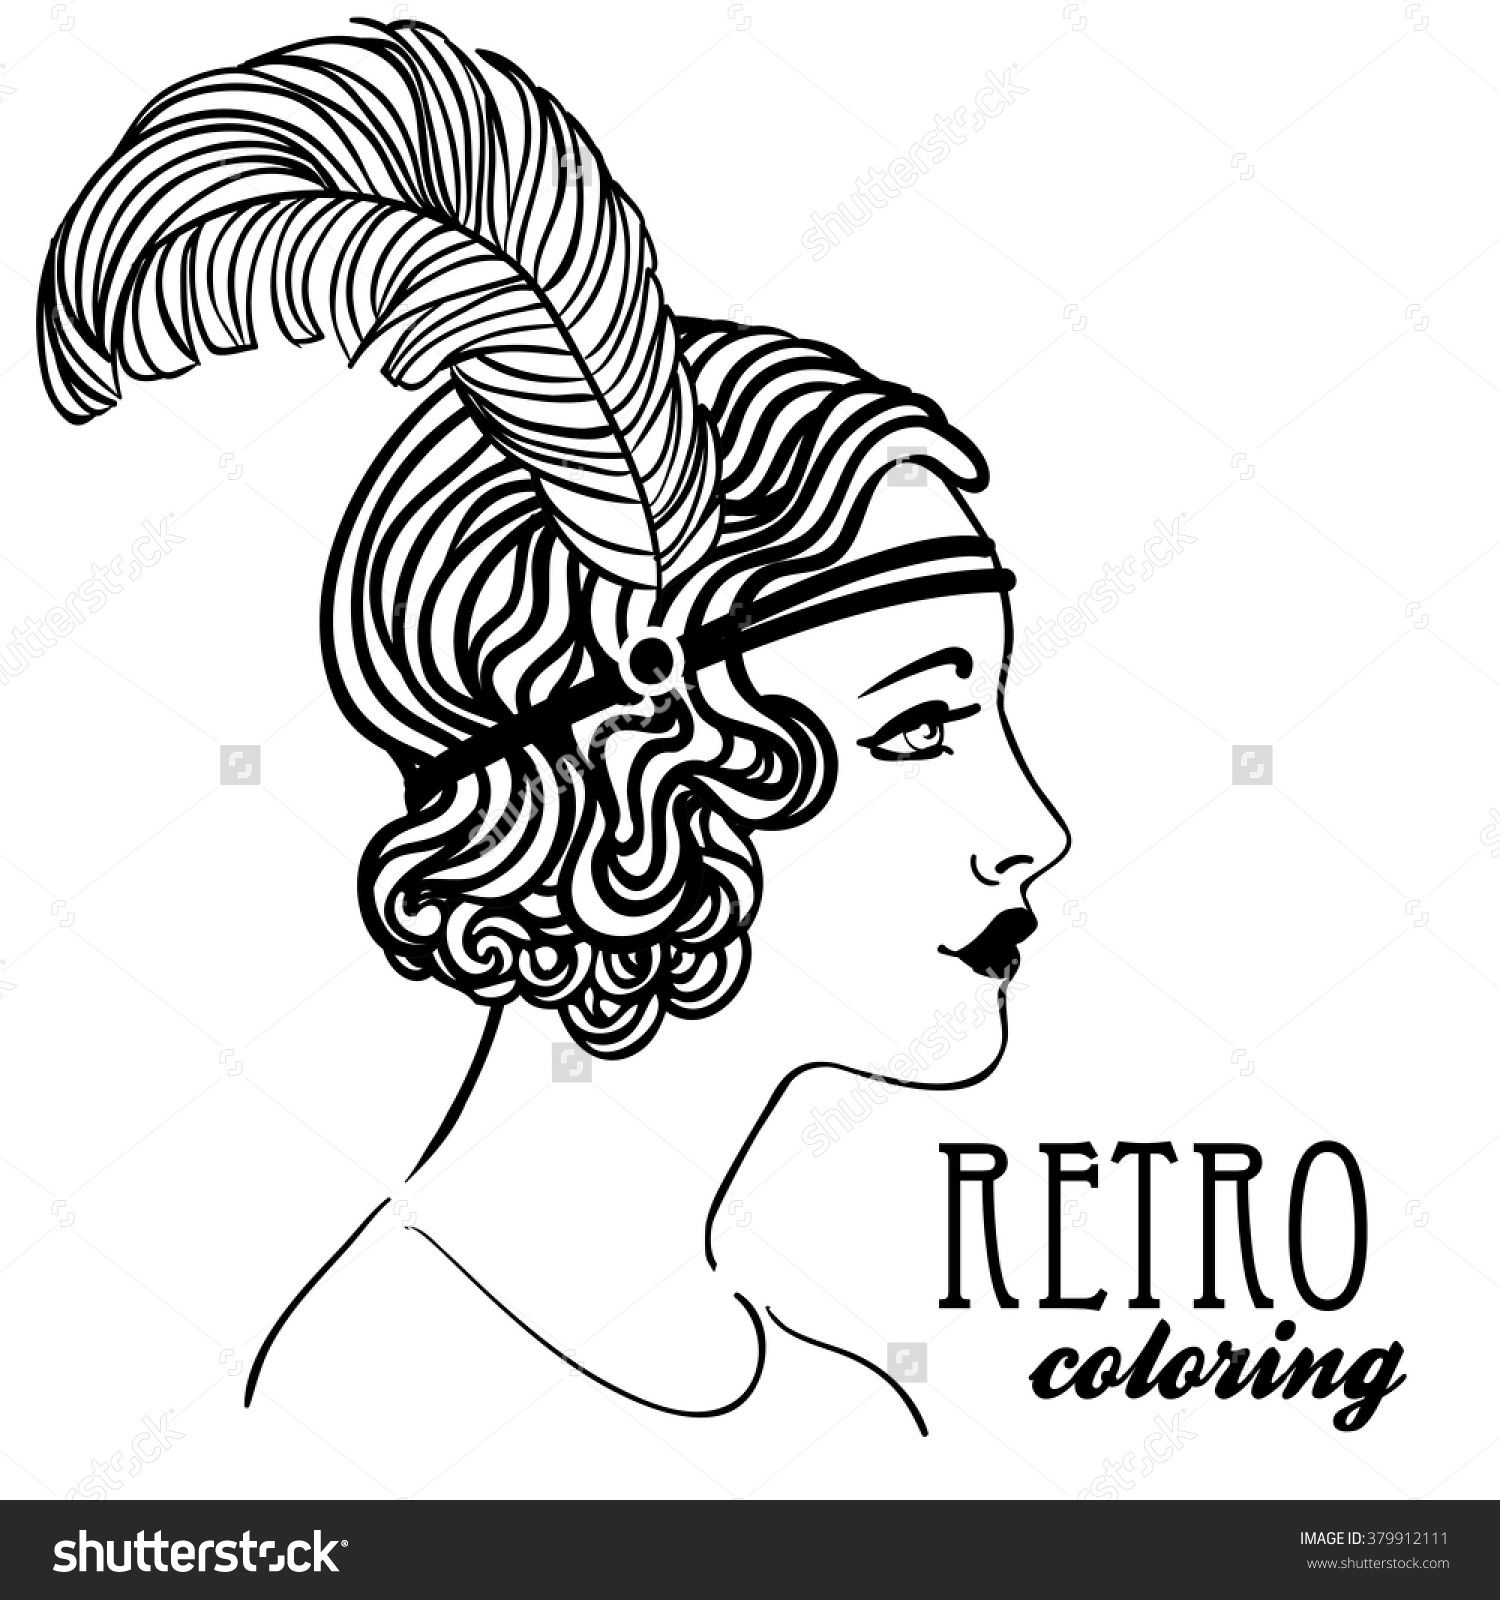 Retro Coloring Book For Kids And Adults Retro Women Twenties